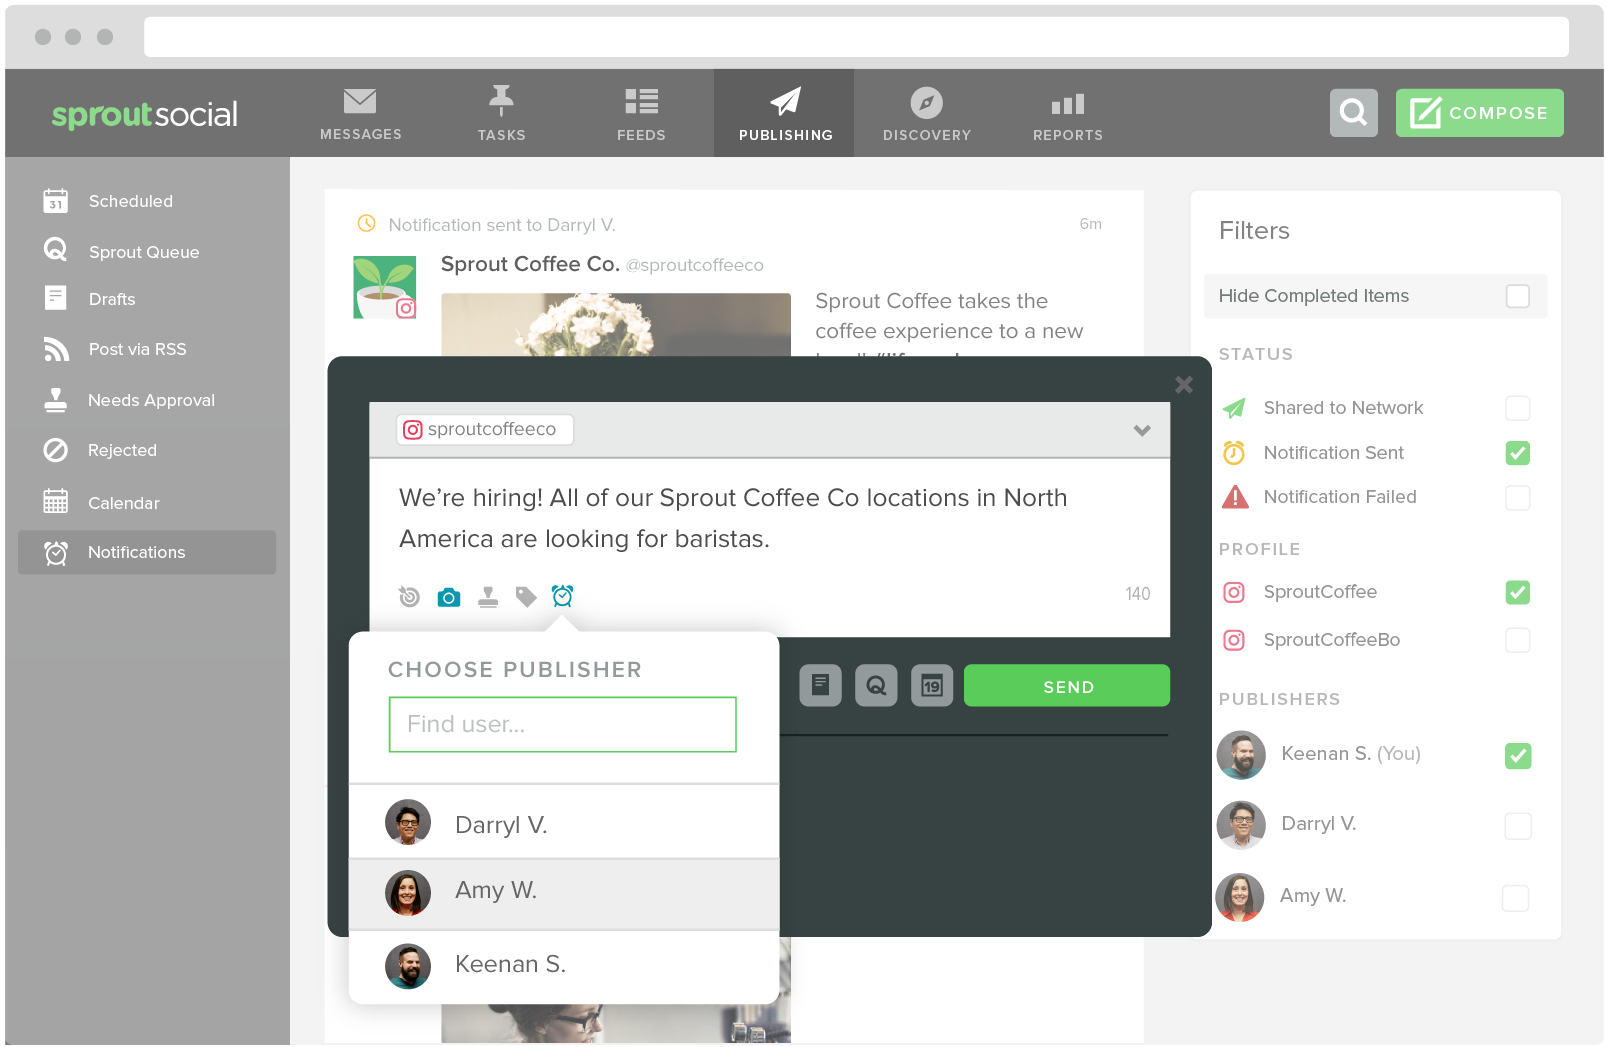 Sprout social offers Instagram scheduling so users can post at the perfect time